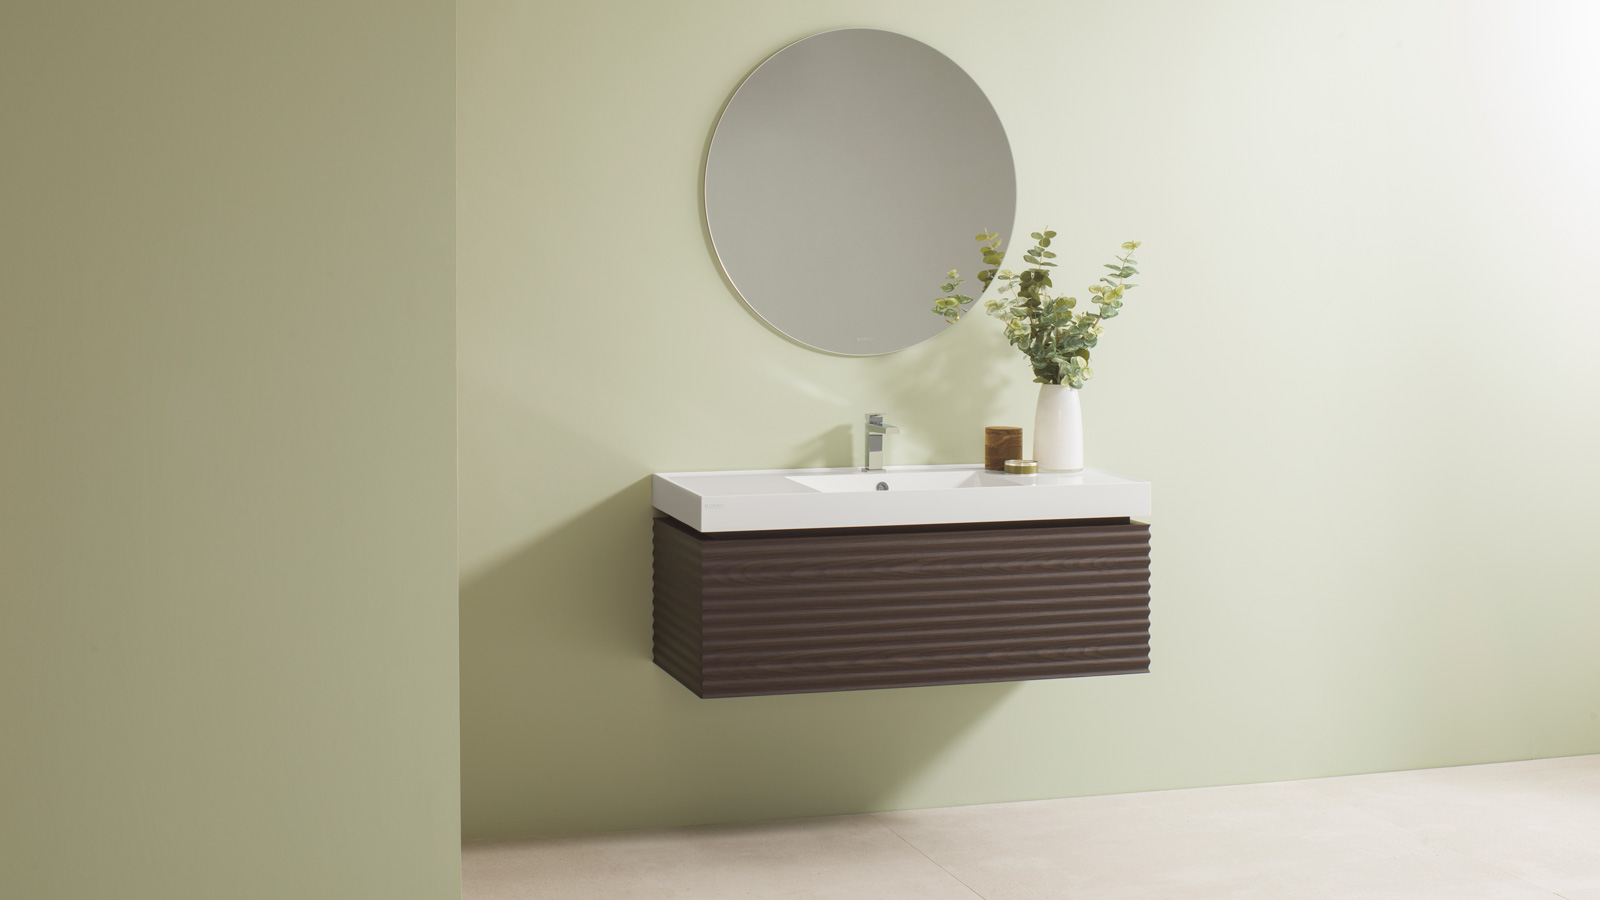 Bespoke bathrooms with collections in Krion® Shell